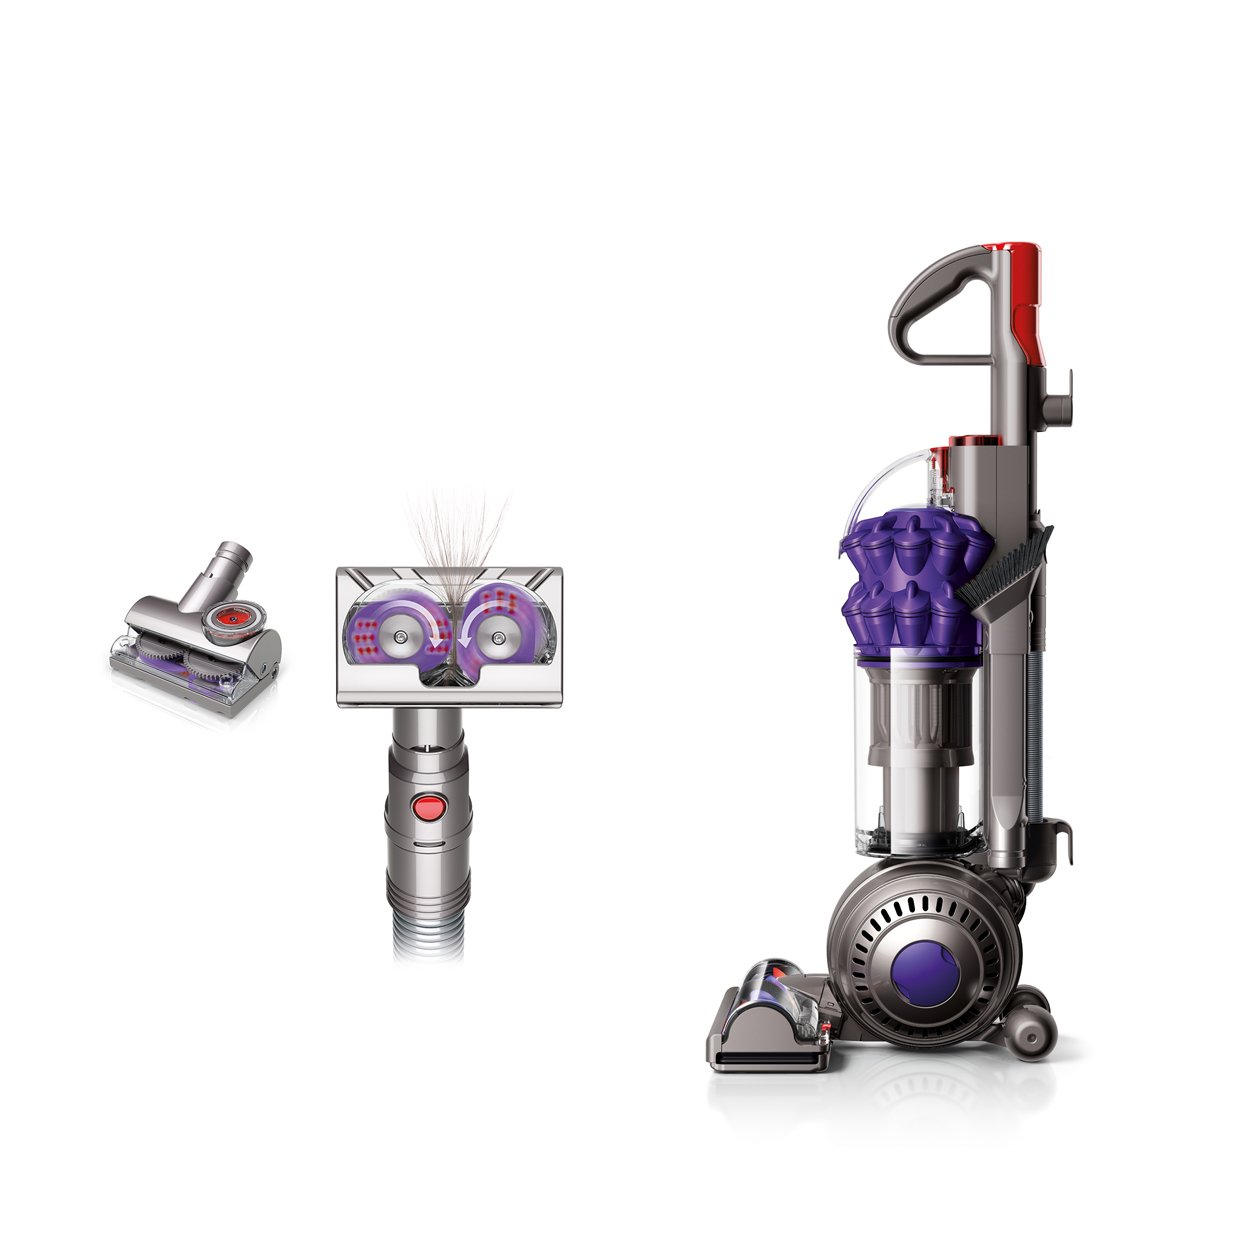 Dyson DC50 Ball Multi Floor Compact Upright Vacuum Cleaner, Iron/Purple - Corded